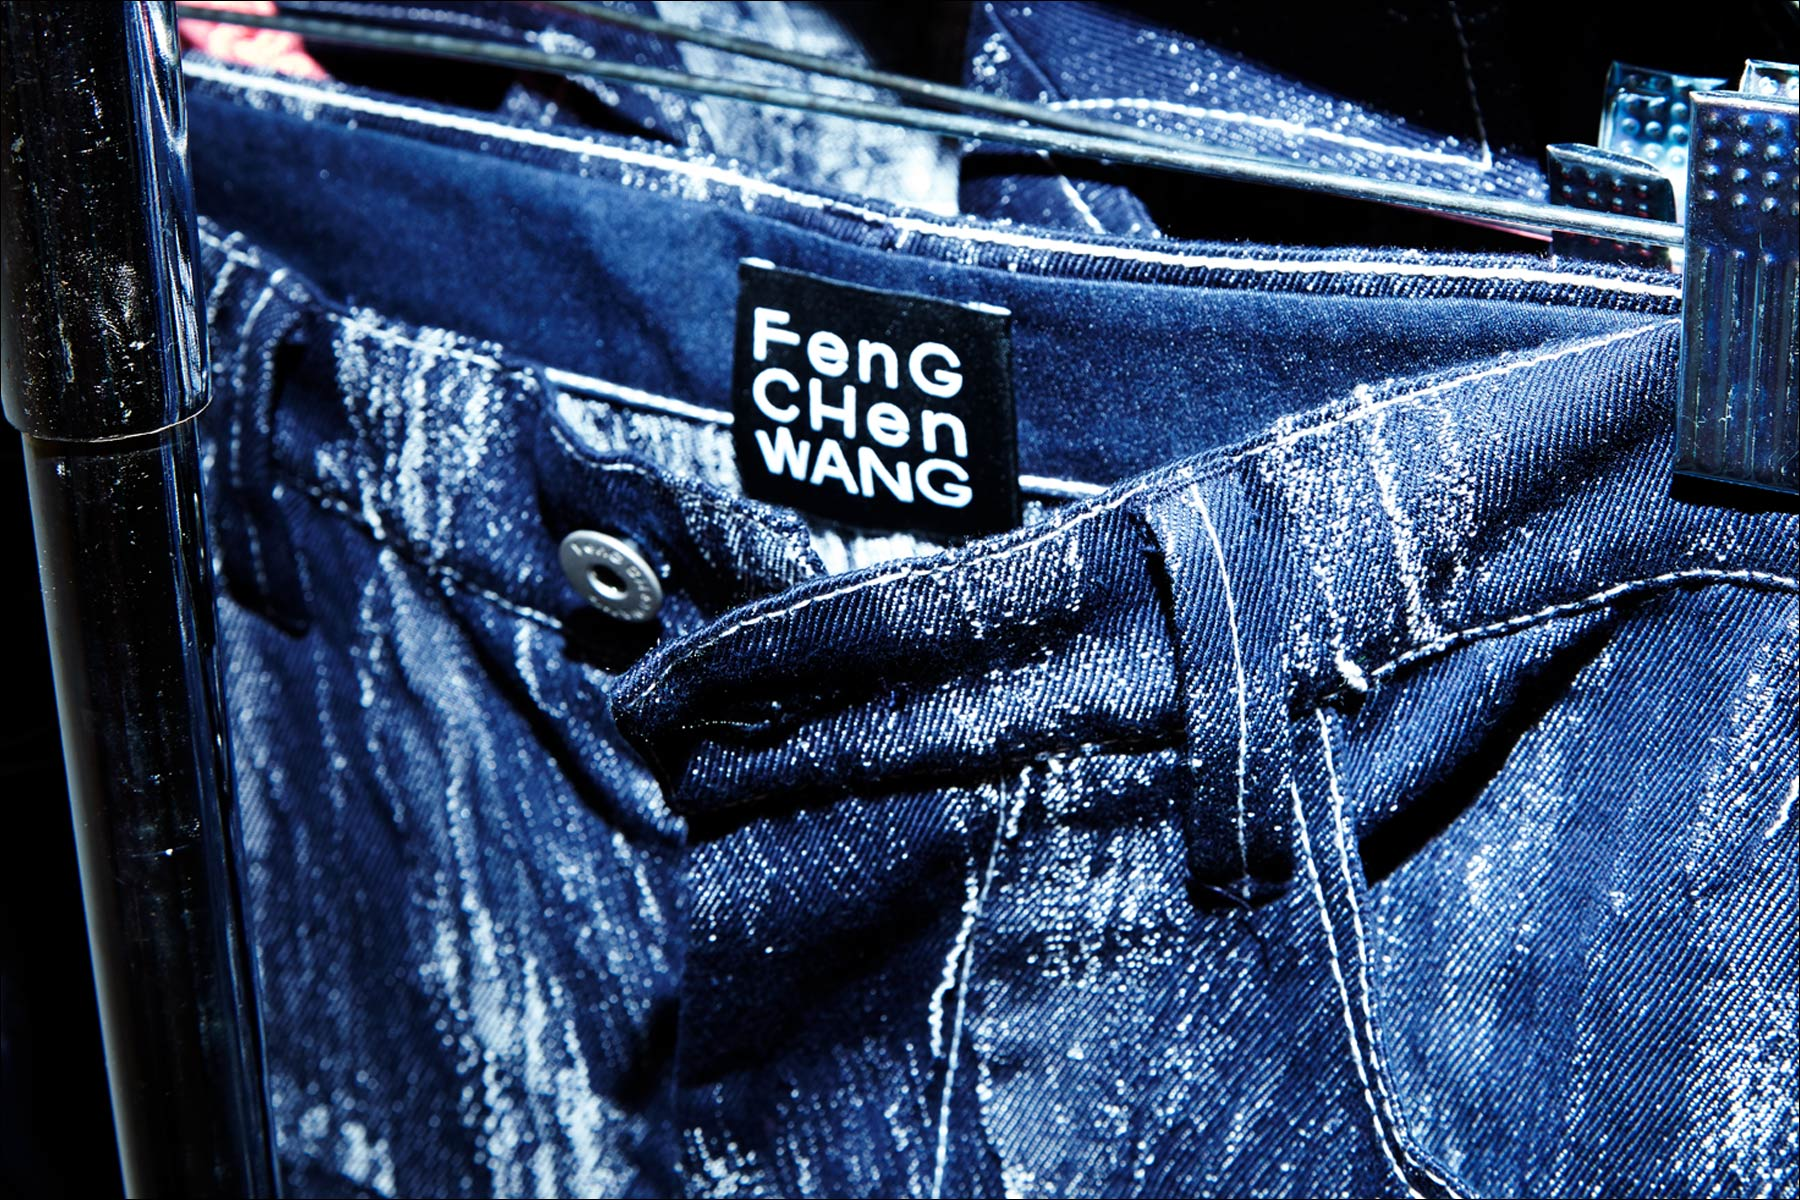 Closeup of jeans backstage at the Feng Chen Wang menswear show. Photographed by Alexander Thompson for Ponyboy magazine NY.